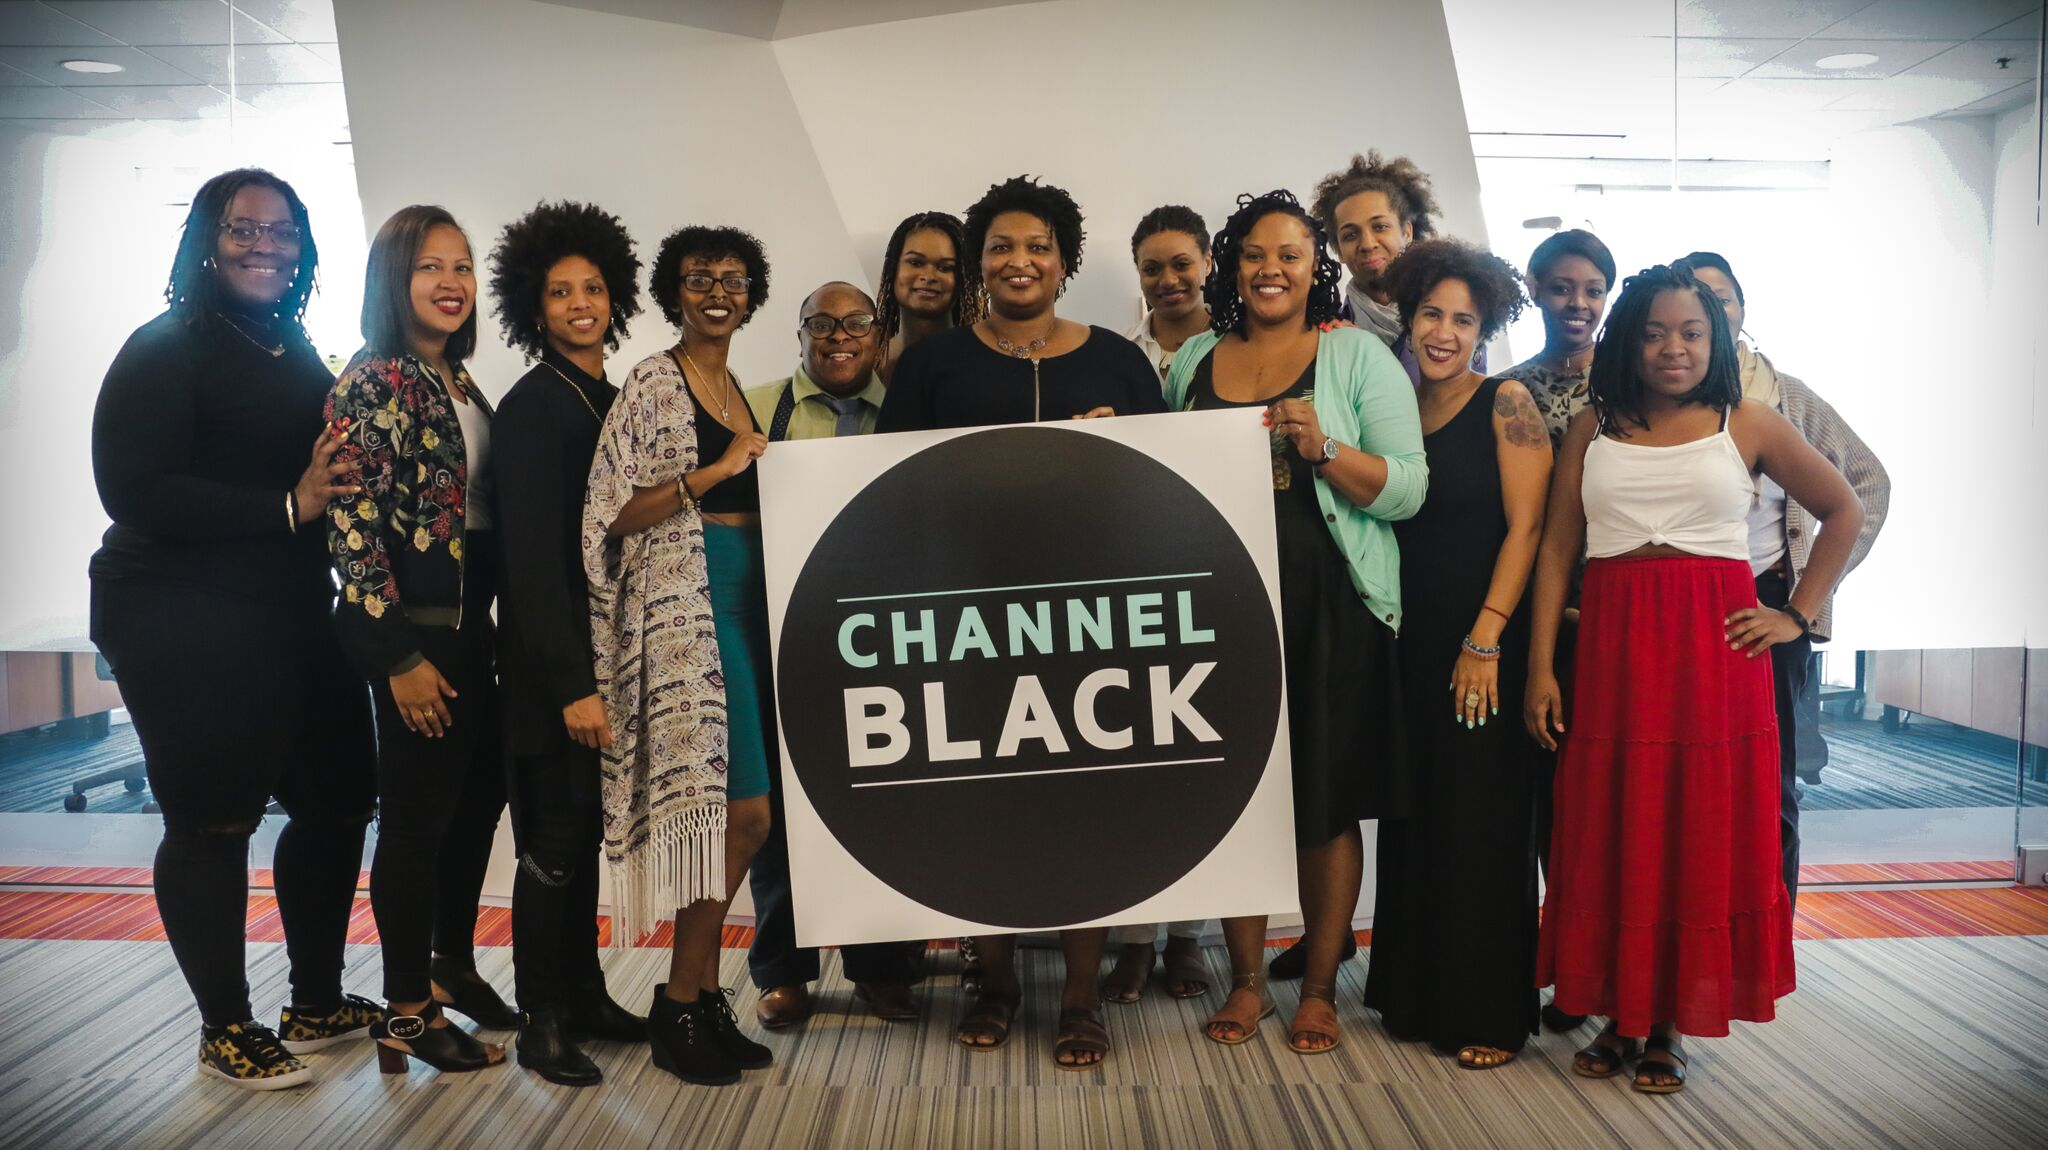 Channel Black 2017 with then state rep Stacey Abrams